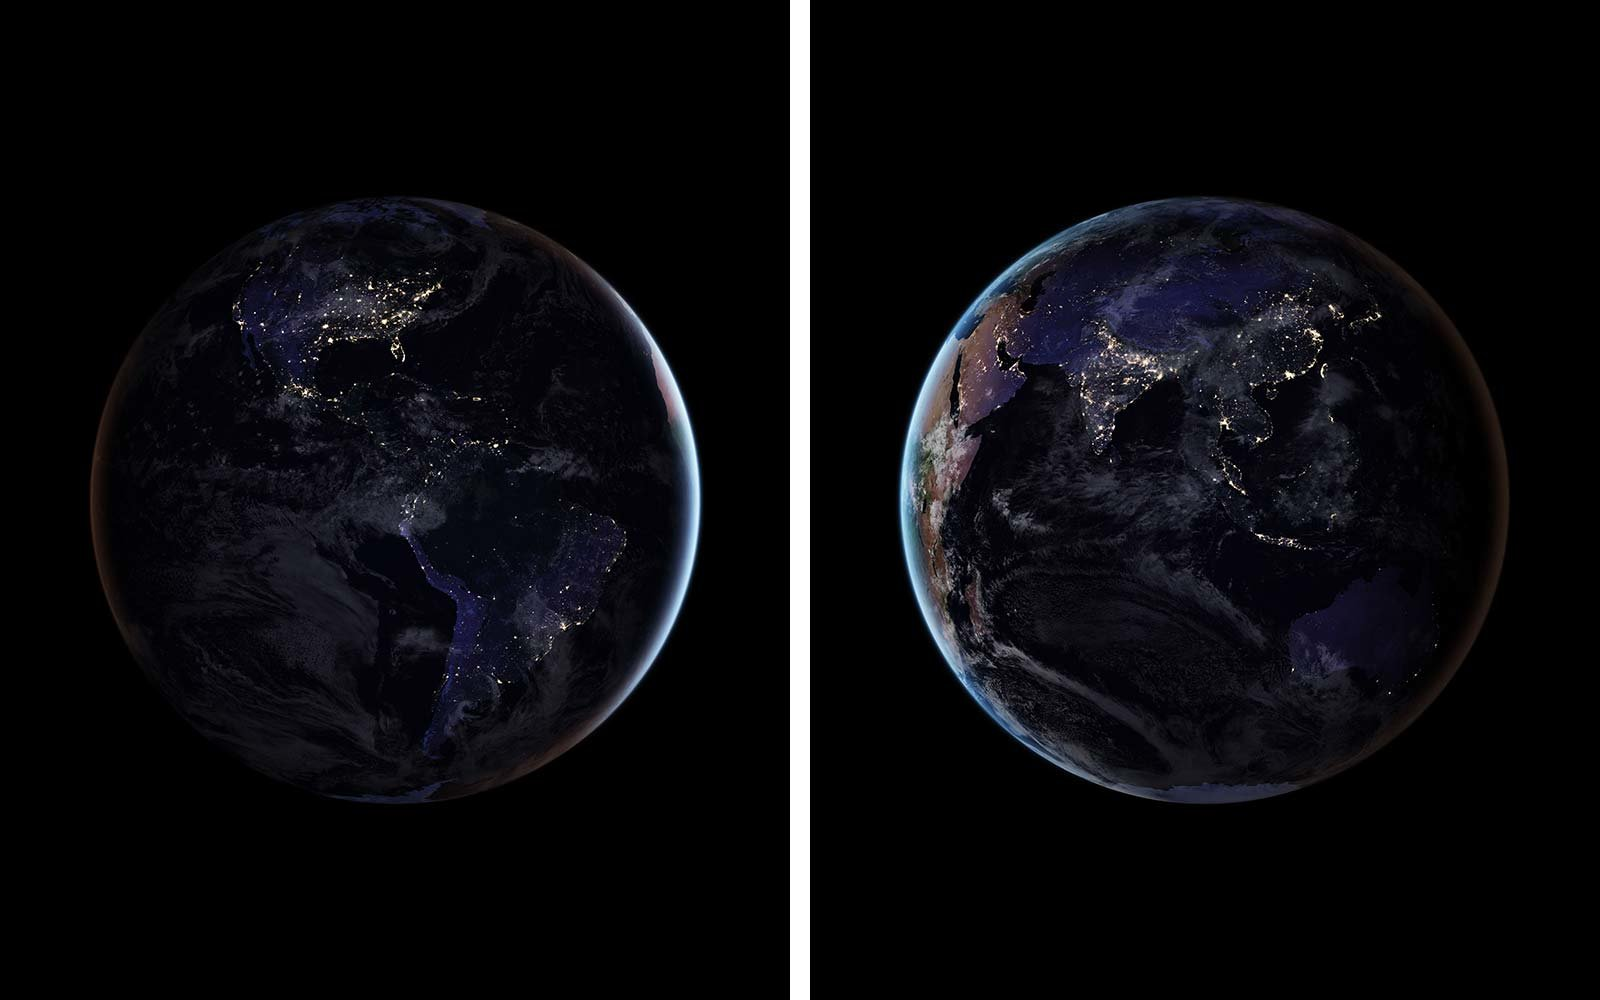 NASA's New Photos of Earth Lit up at Night Will Take Your